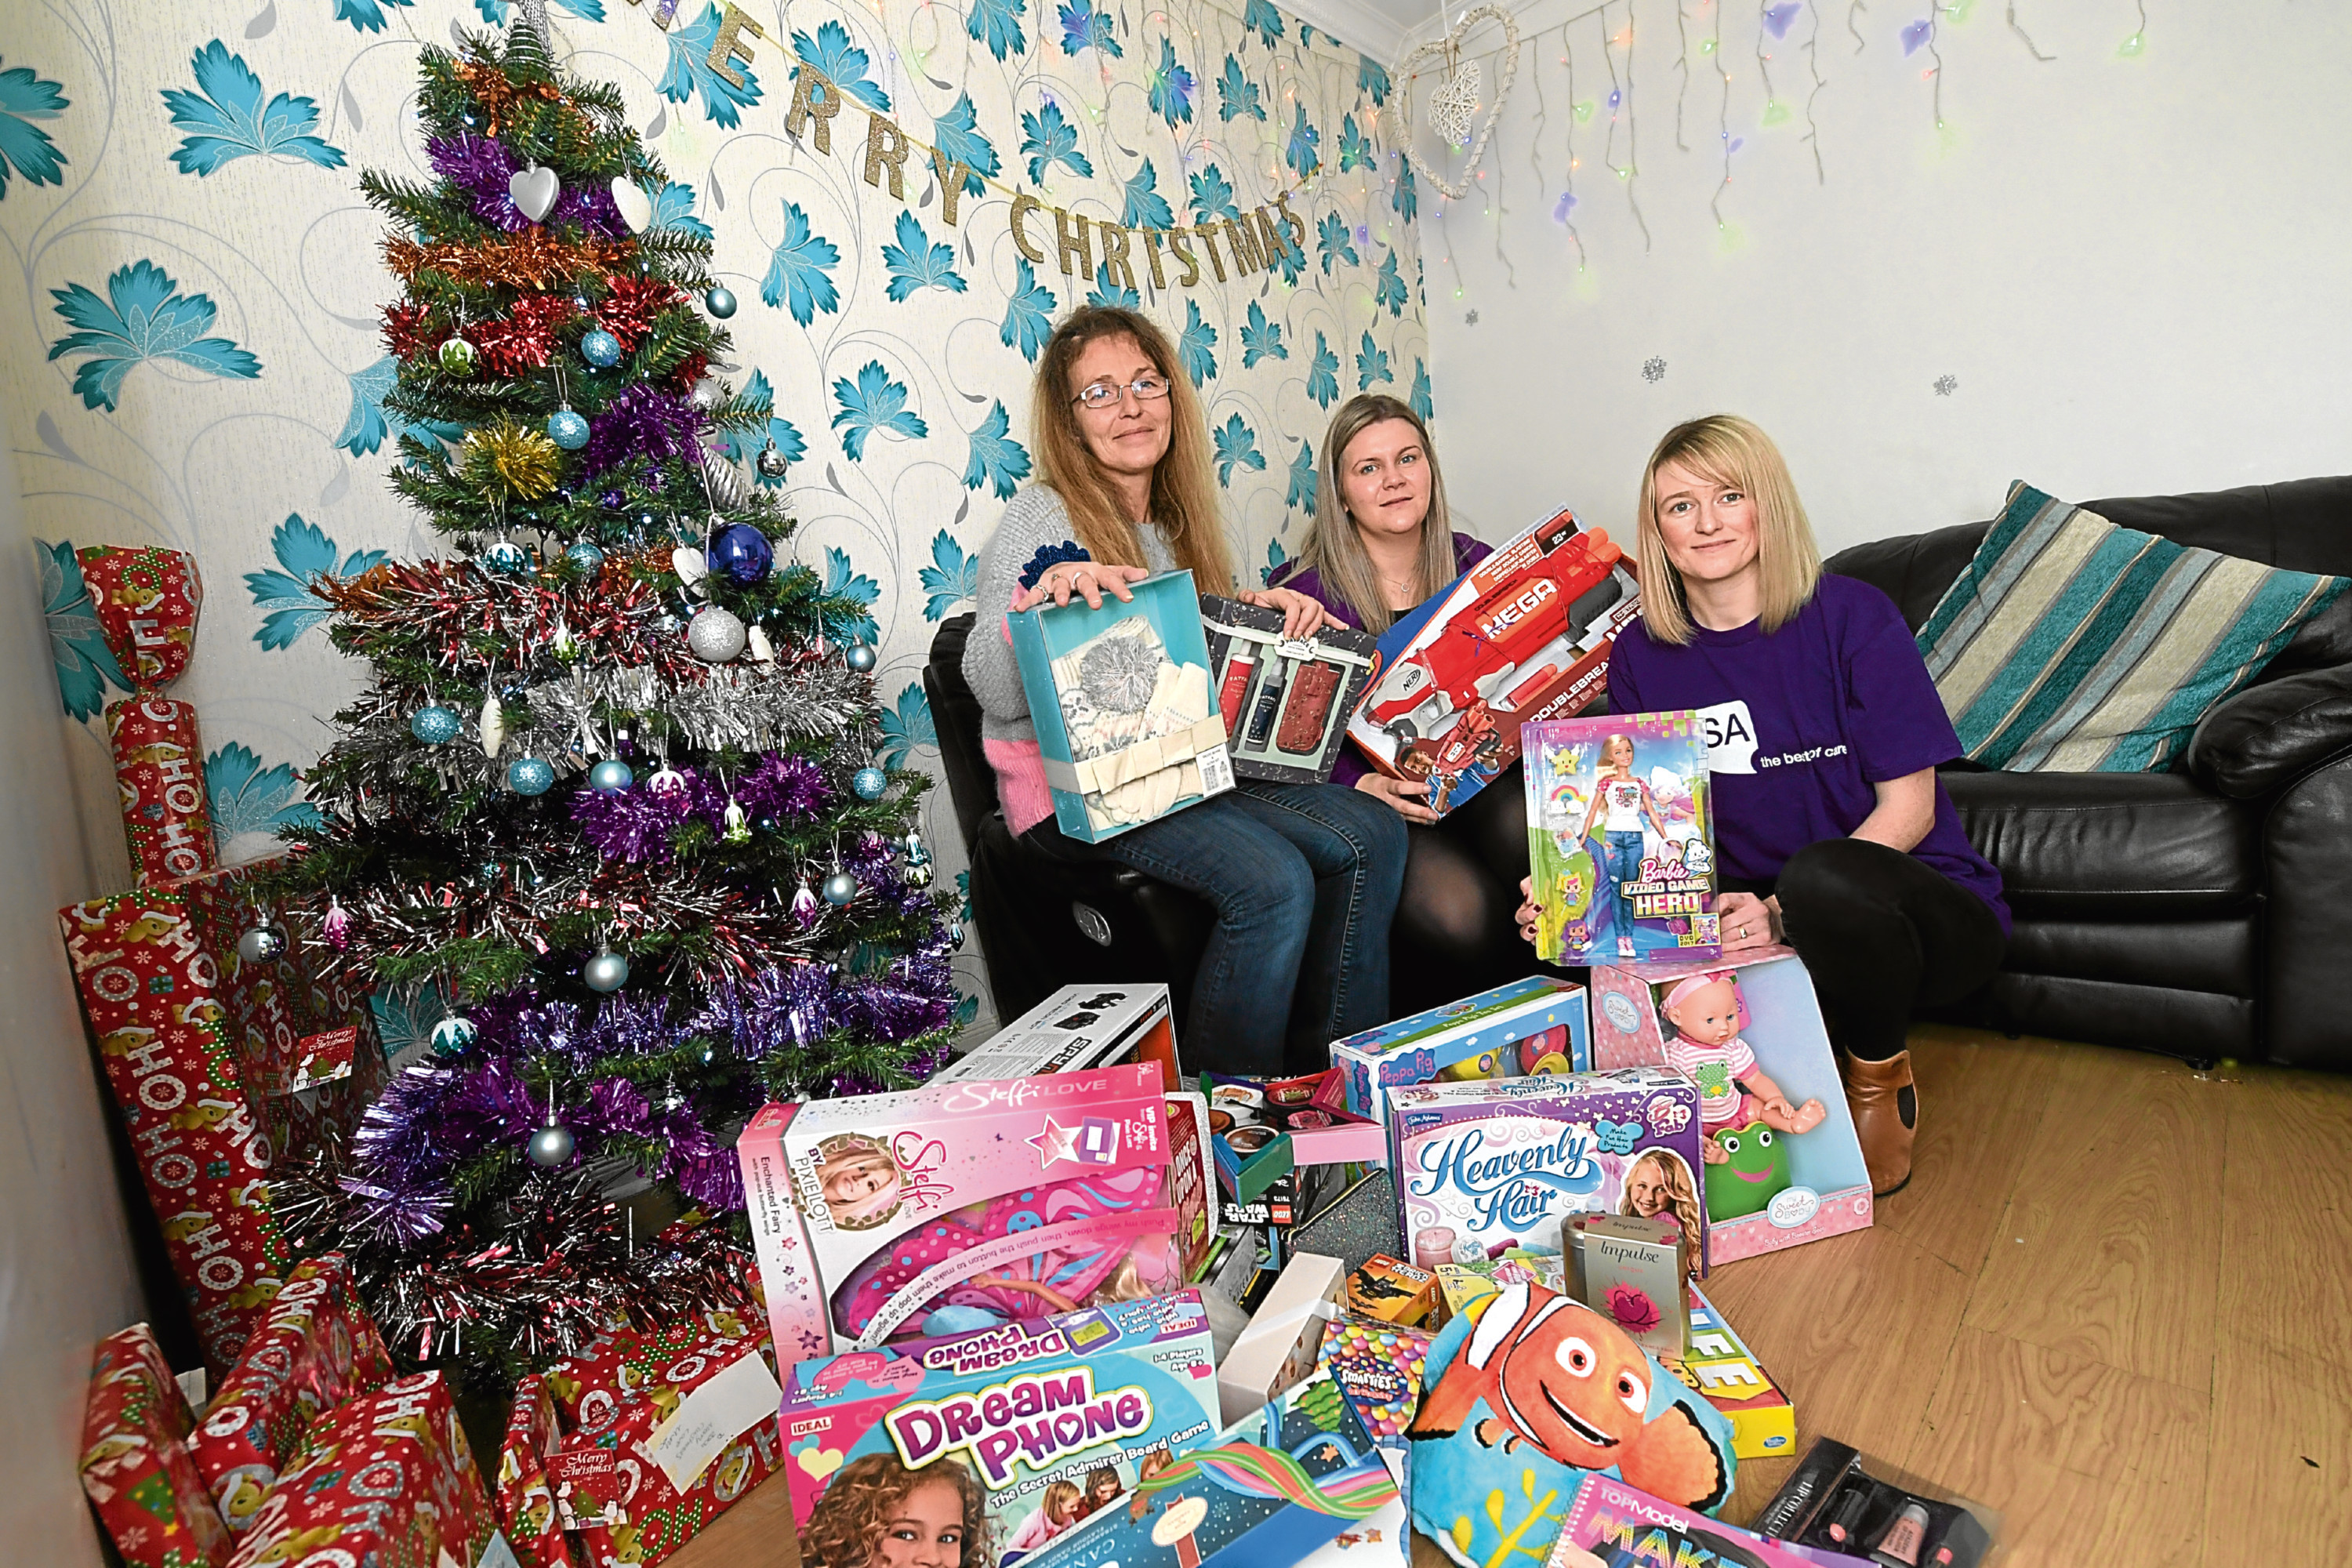 Jeanie McAllister had £2,500 of Christmas presents stolen from her garden shed and VSA have given her replacement presents. Jeanie with, from left, Vicki Youngson and Jennifer Mitchell from VSA.